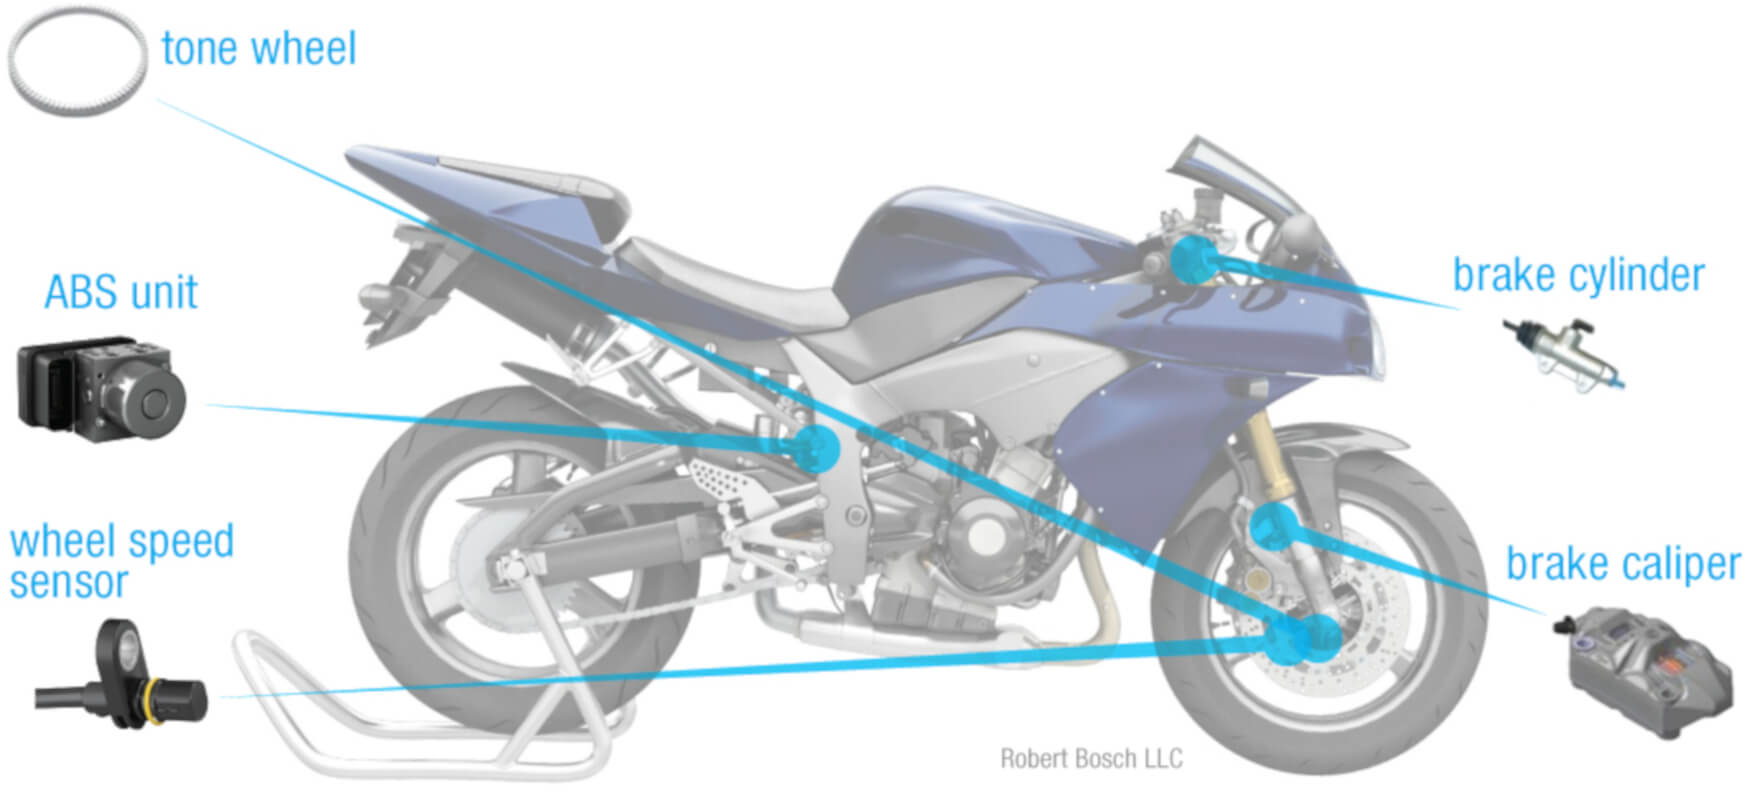 The Proper Way To Brake On A Motorcycle Car System Diagram Passenger Abs Automatic